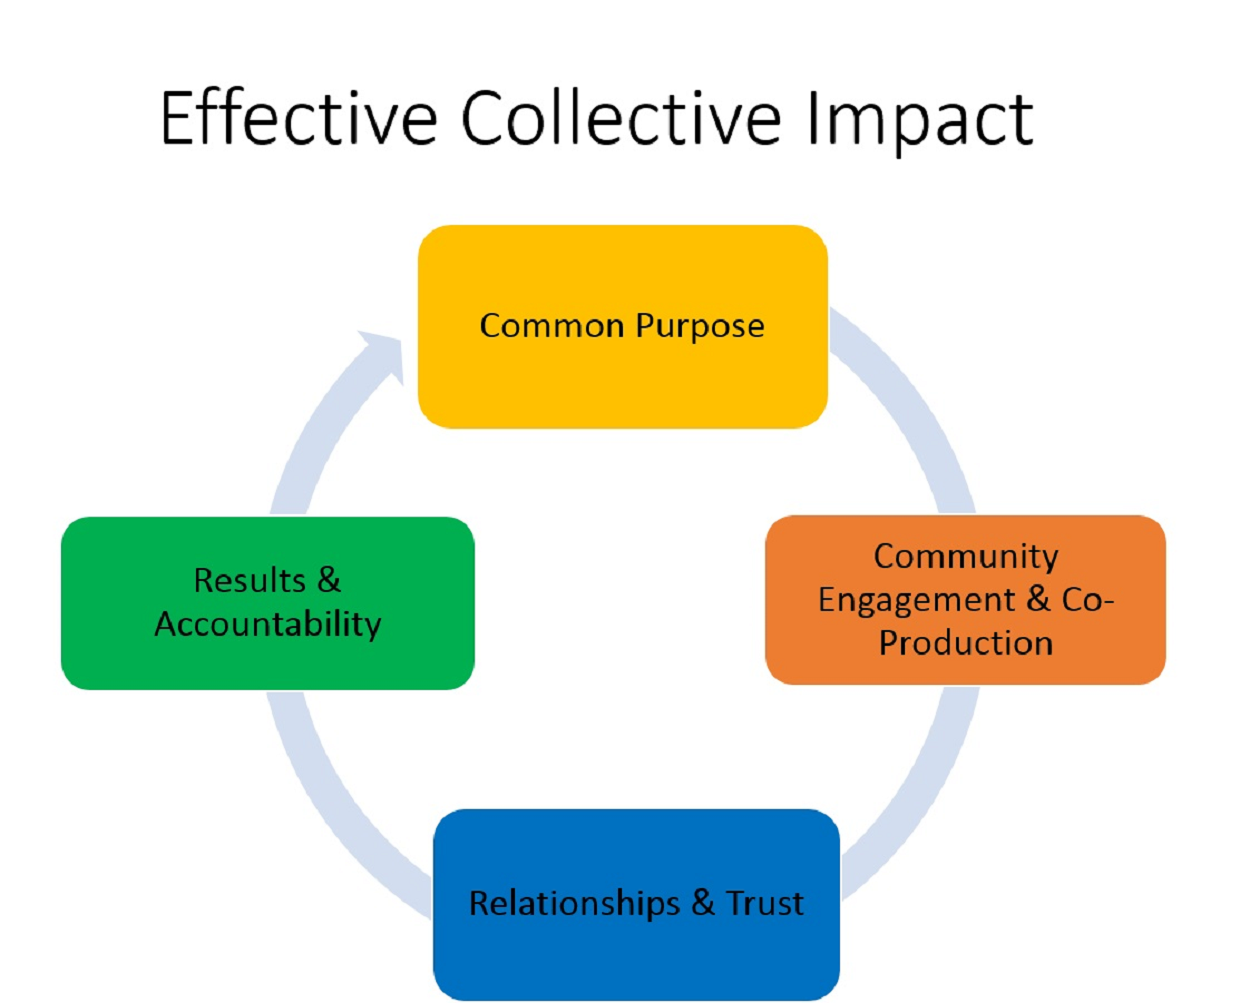 The elements of effective collective impact